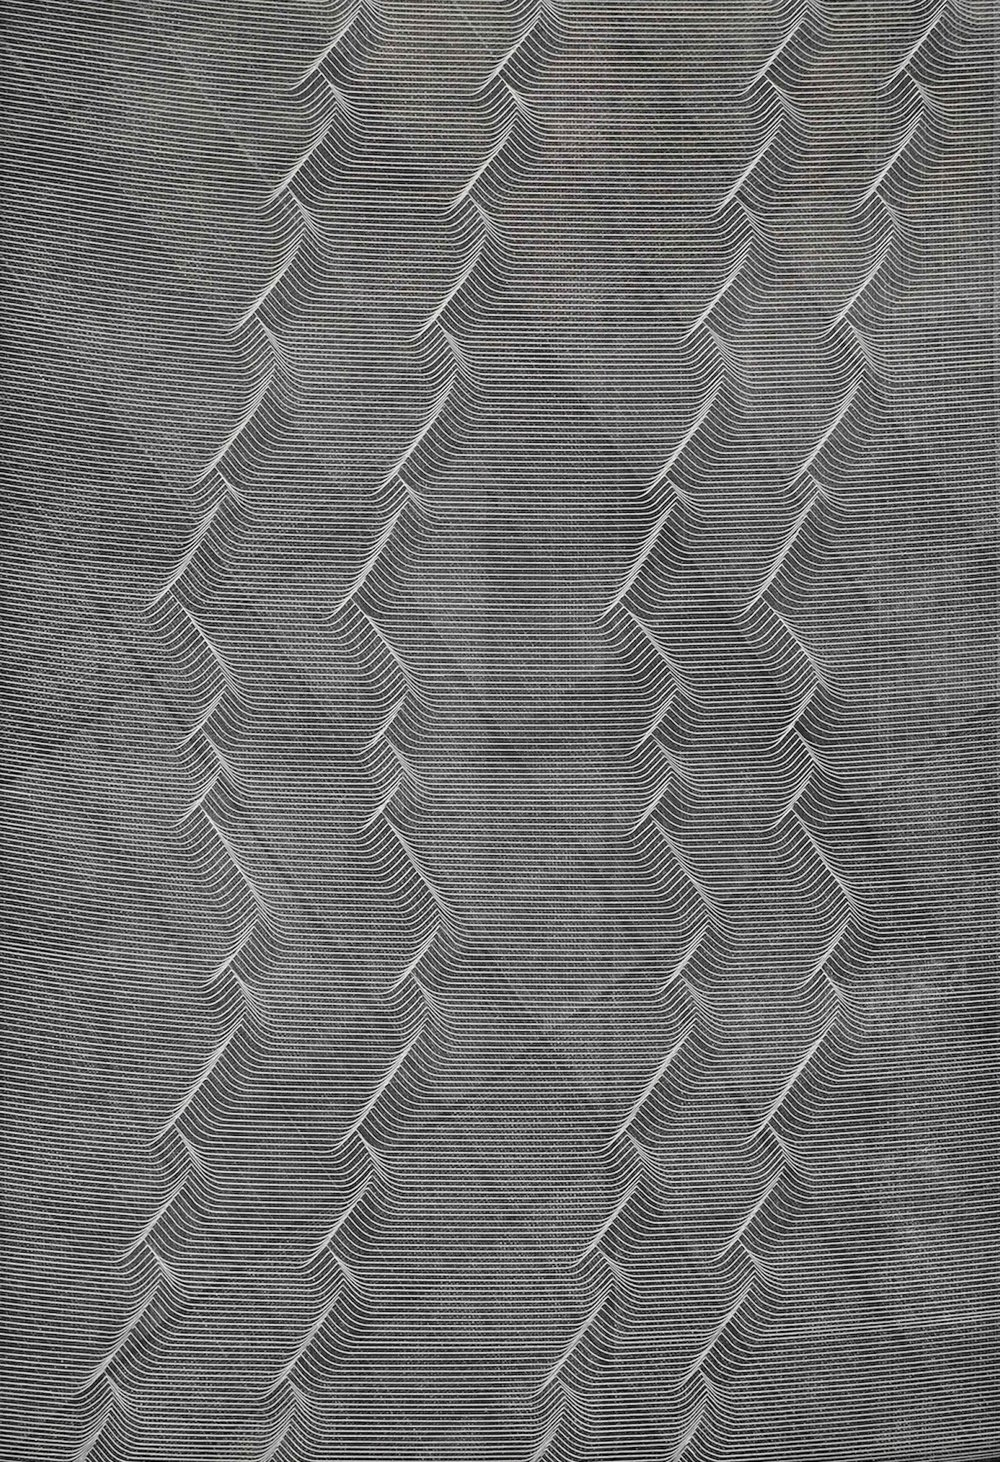 Long Ending (2016)  Scratches and Casein Paint on Gesso Panel  56 x 42 cm